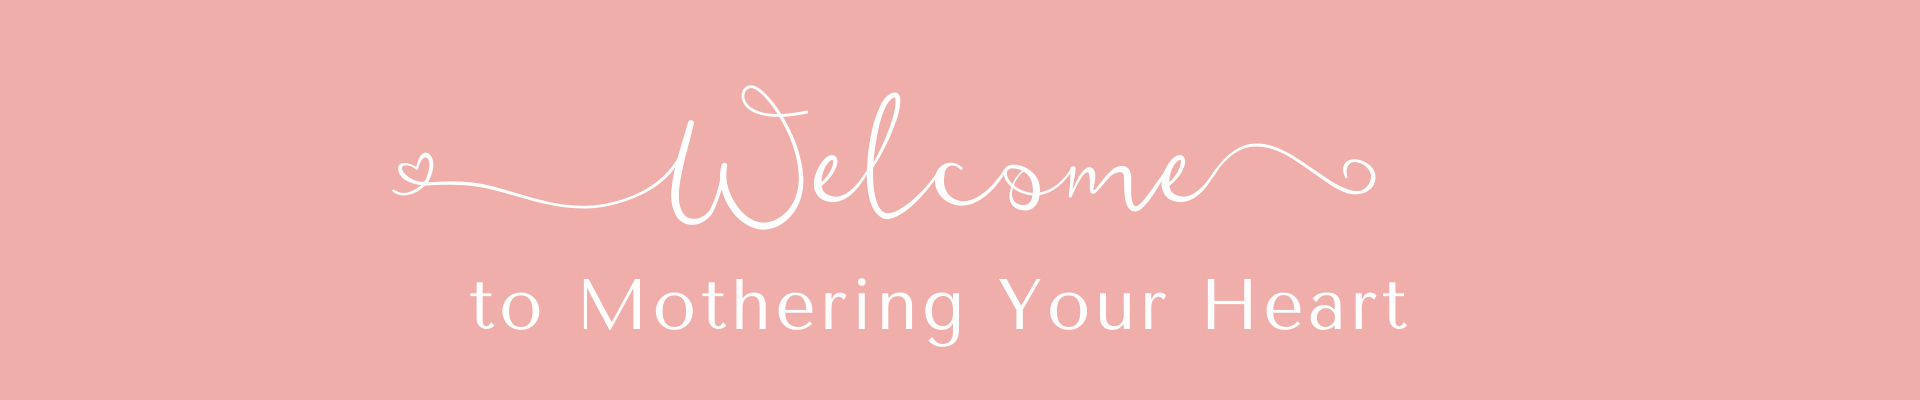 Welcome to Mothering Your Heart. Support after miscarriage, infertility, baby and child loss.